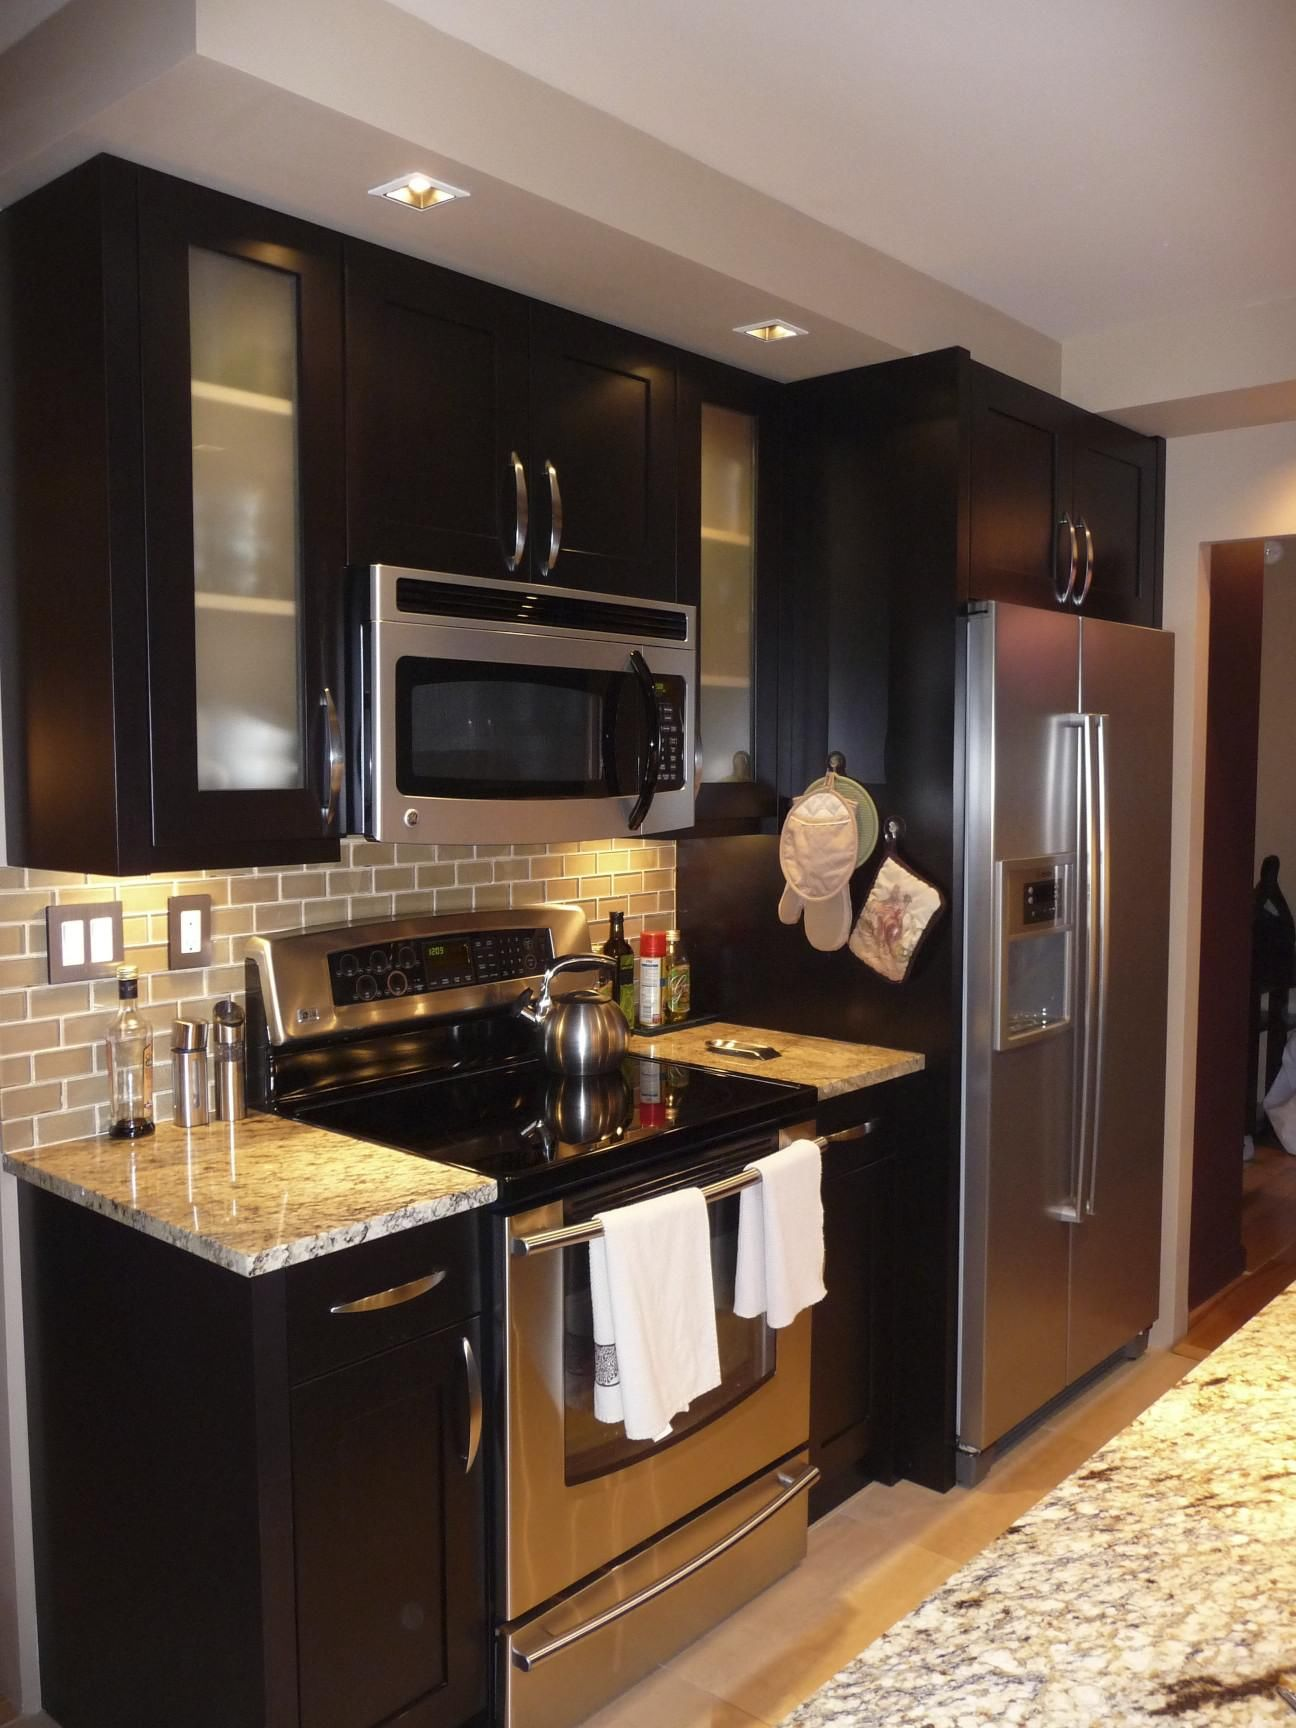 small contemporary kitchen pictures, photos, and images for